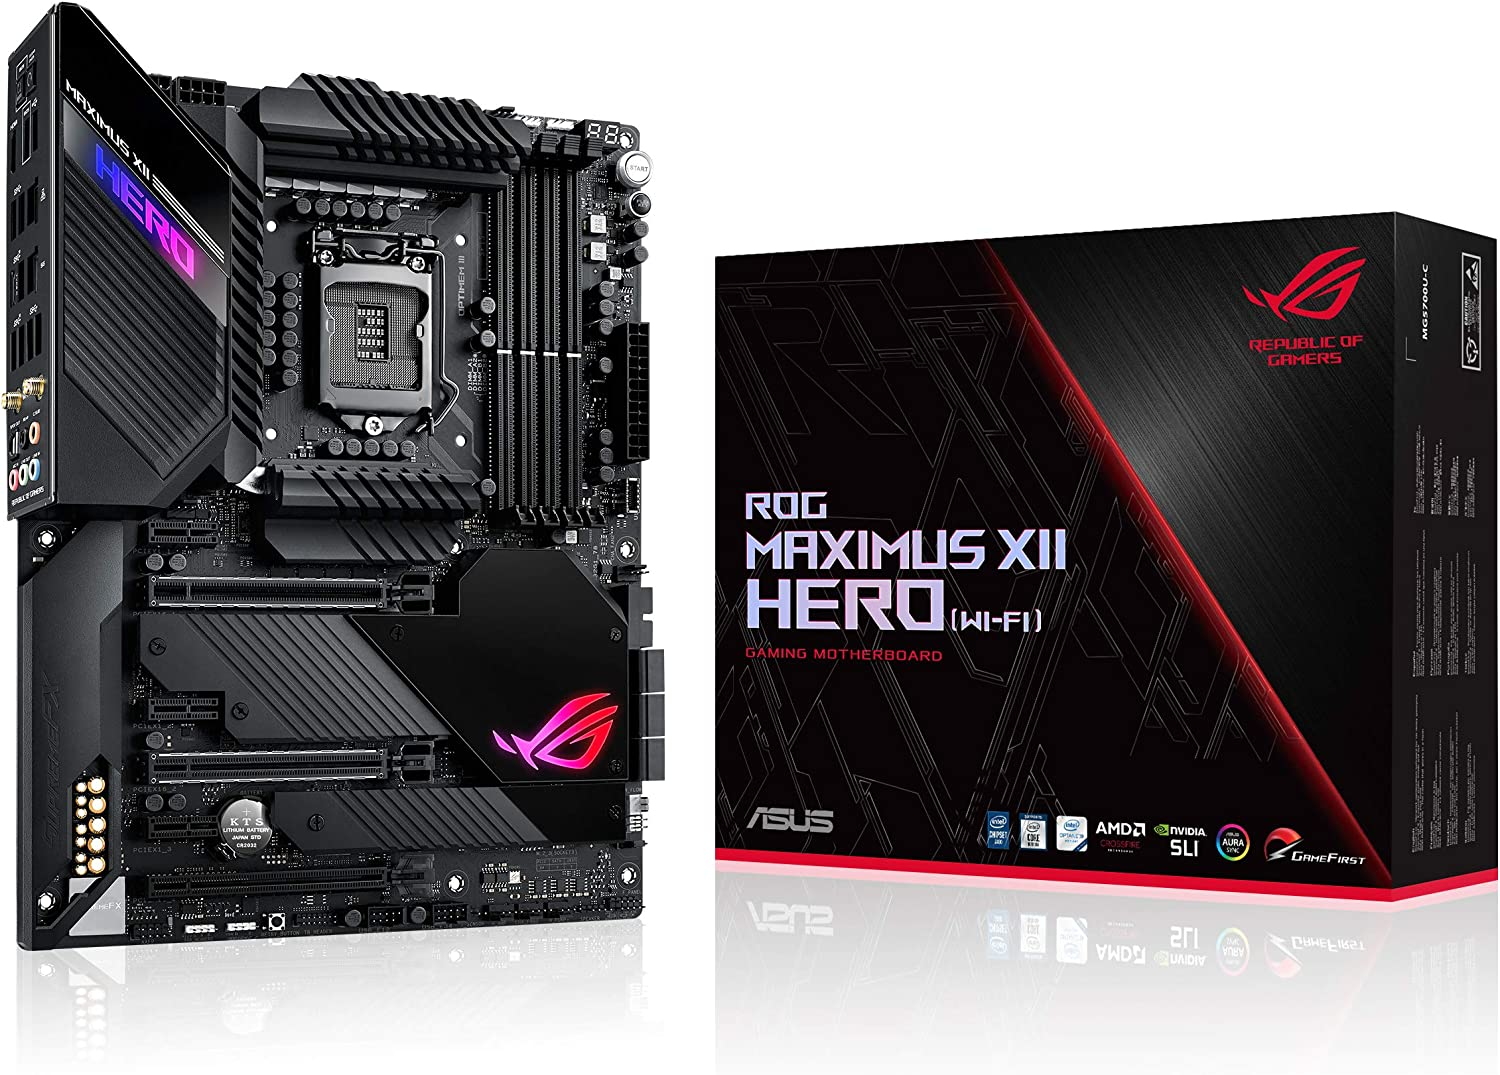 Asus Rog Maximus Xii Hero Wifi Gaming Motherboard Computers Accessories